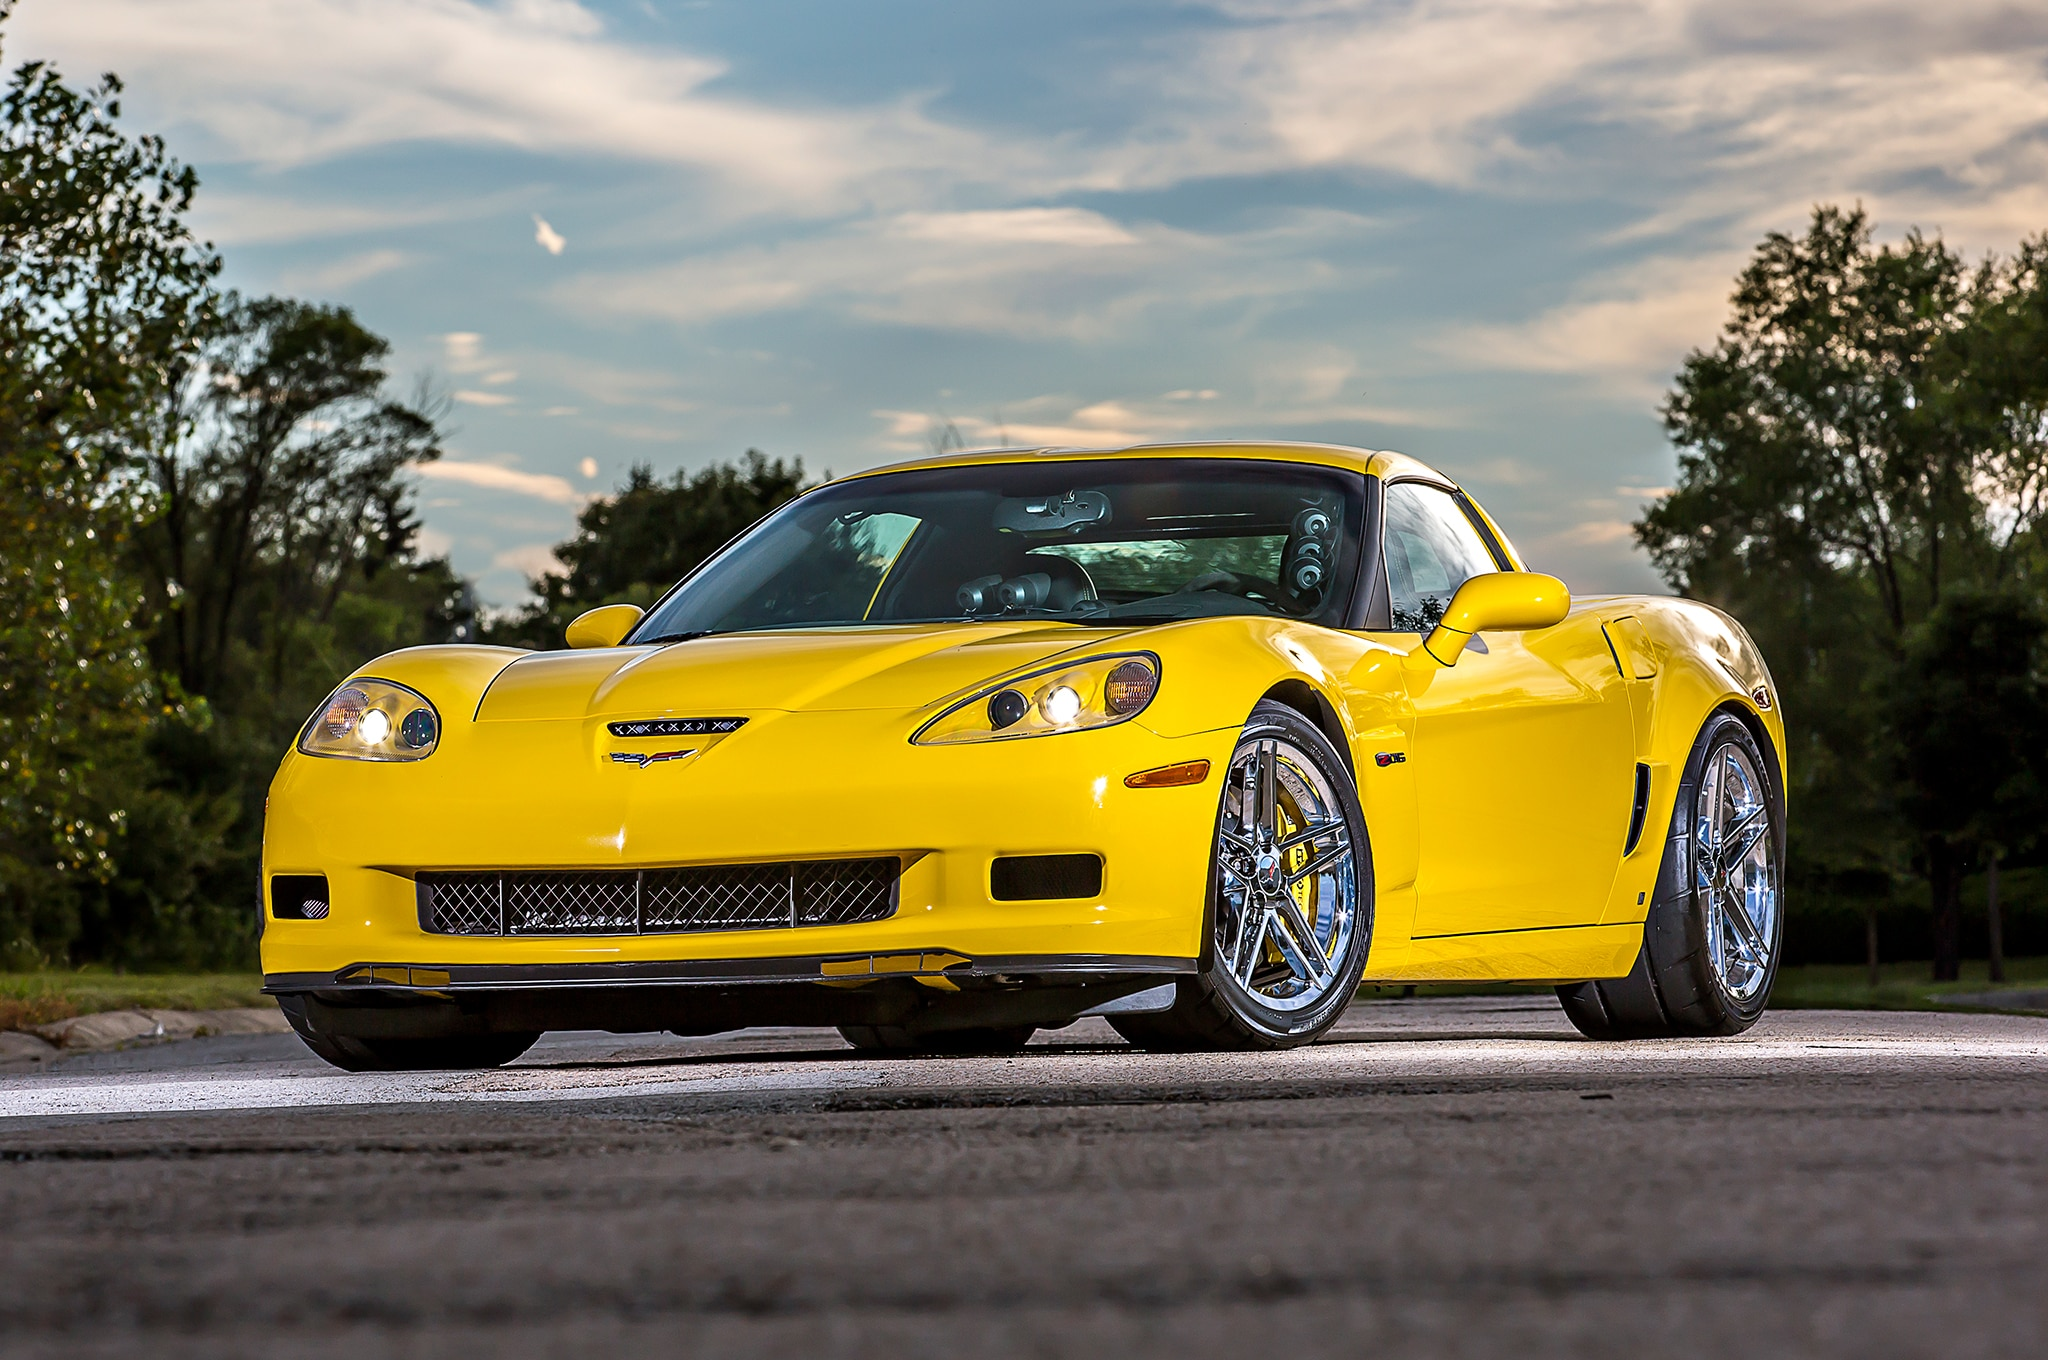 Insane 1,370 Horsepower 2007 Chevrolet Corvette Z06